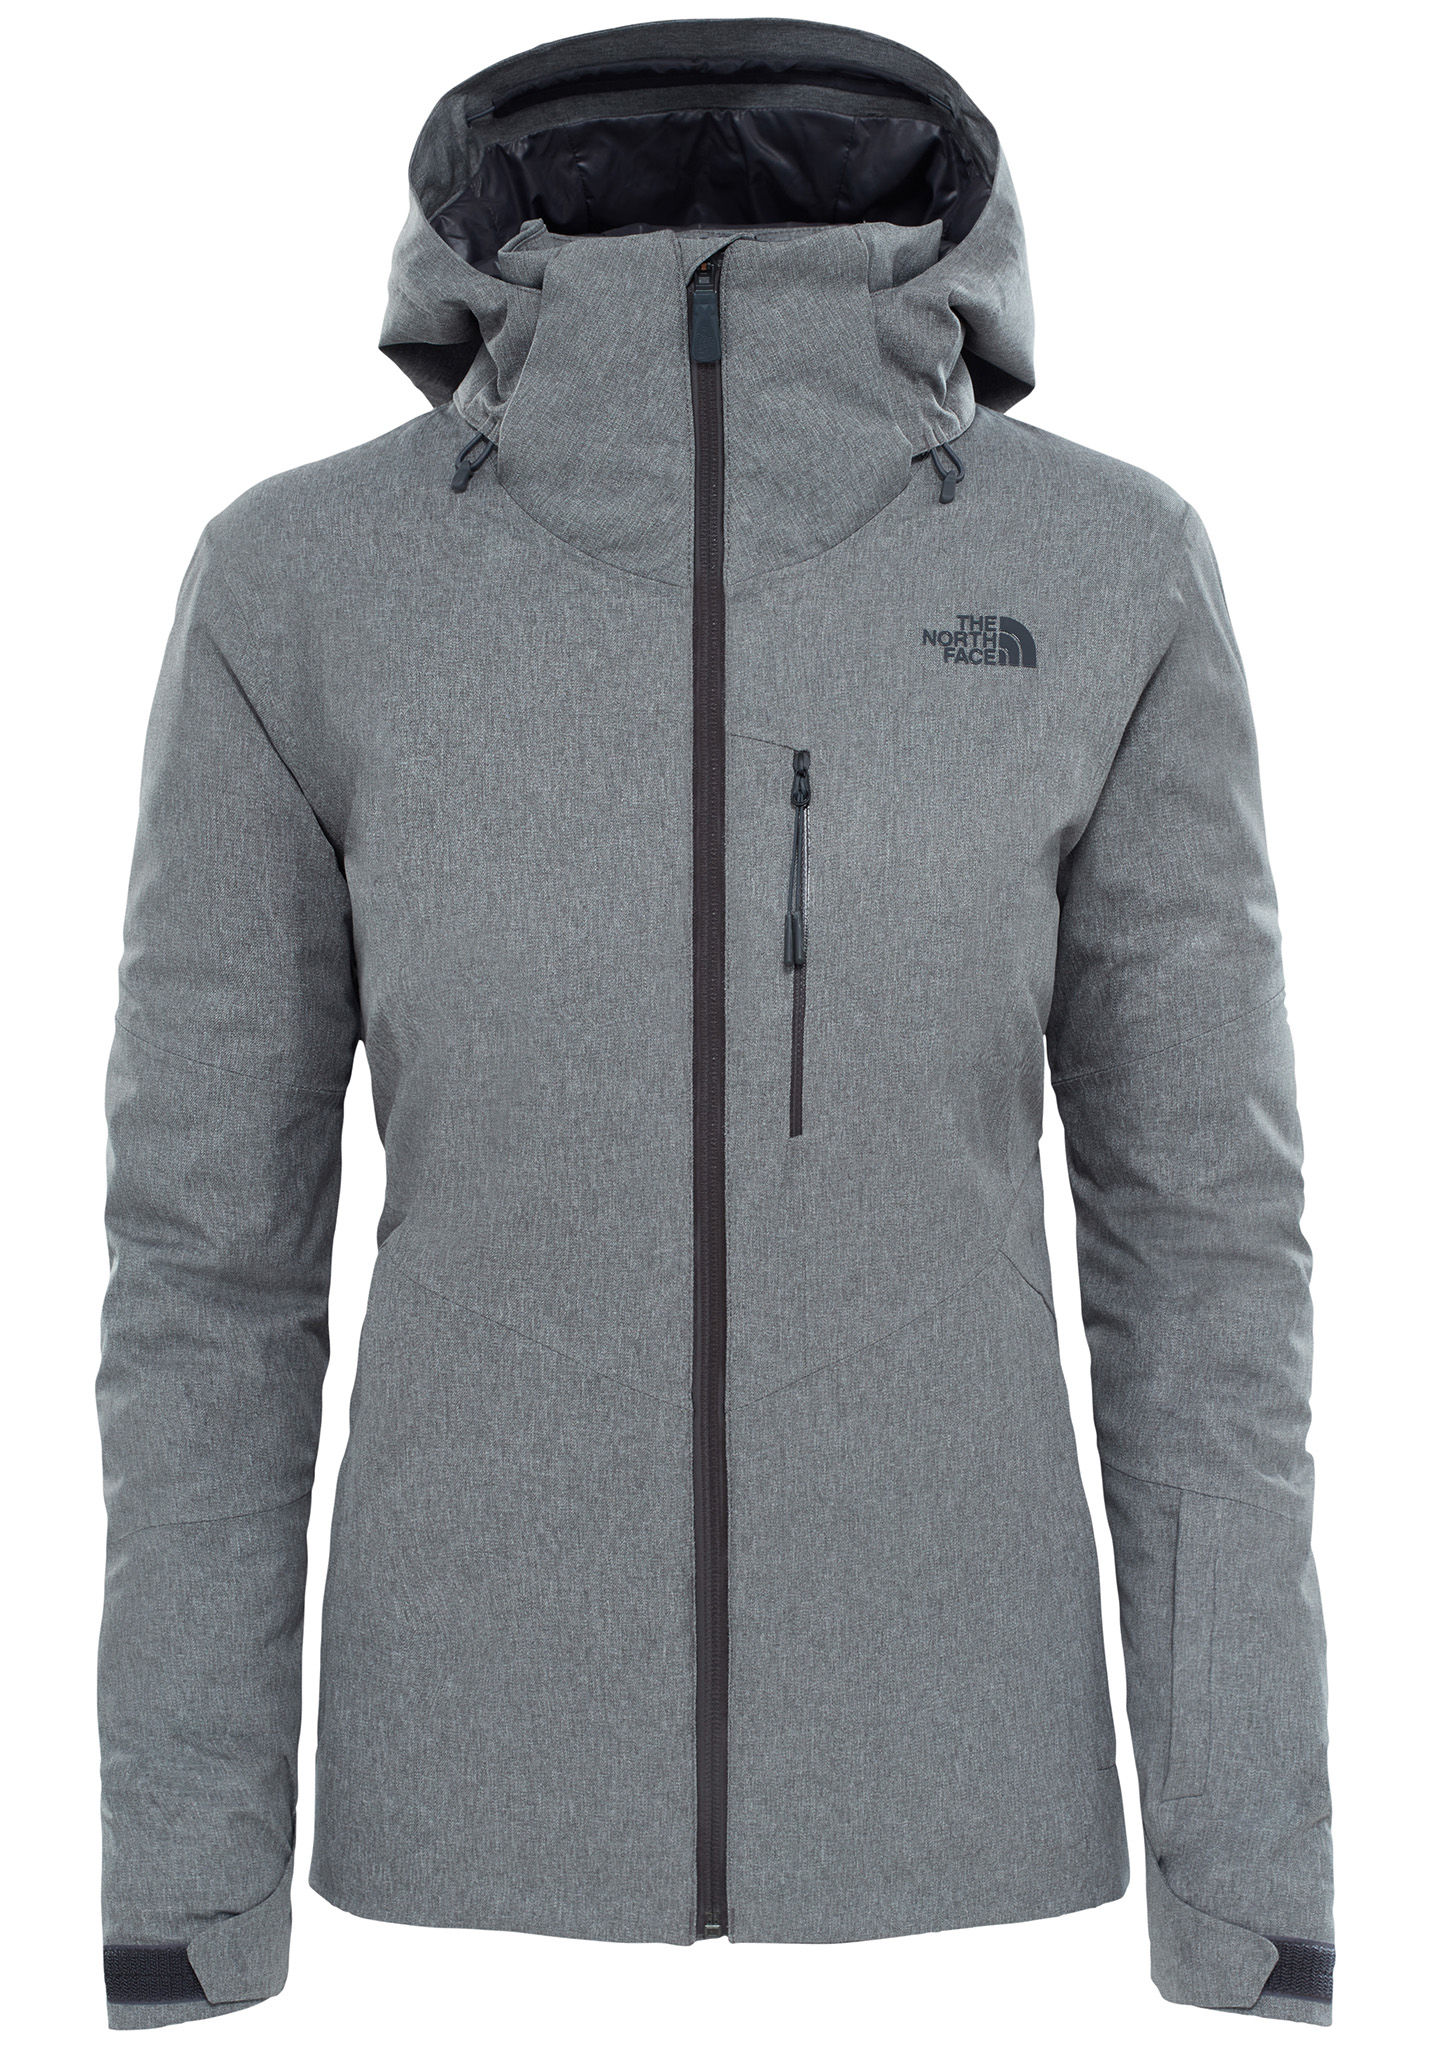 north face chaqueta gris mujer